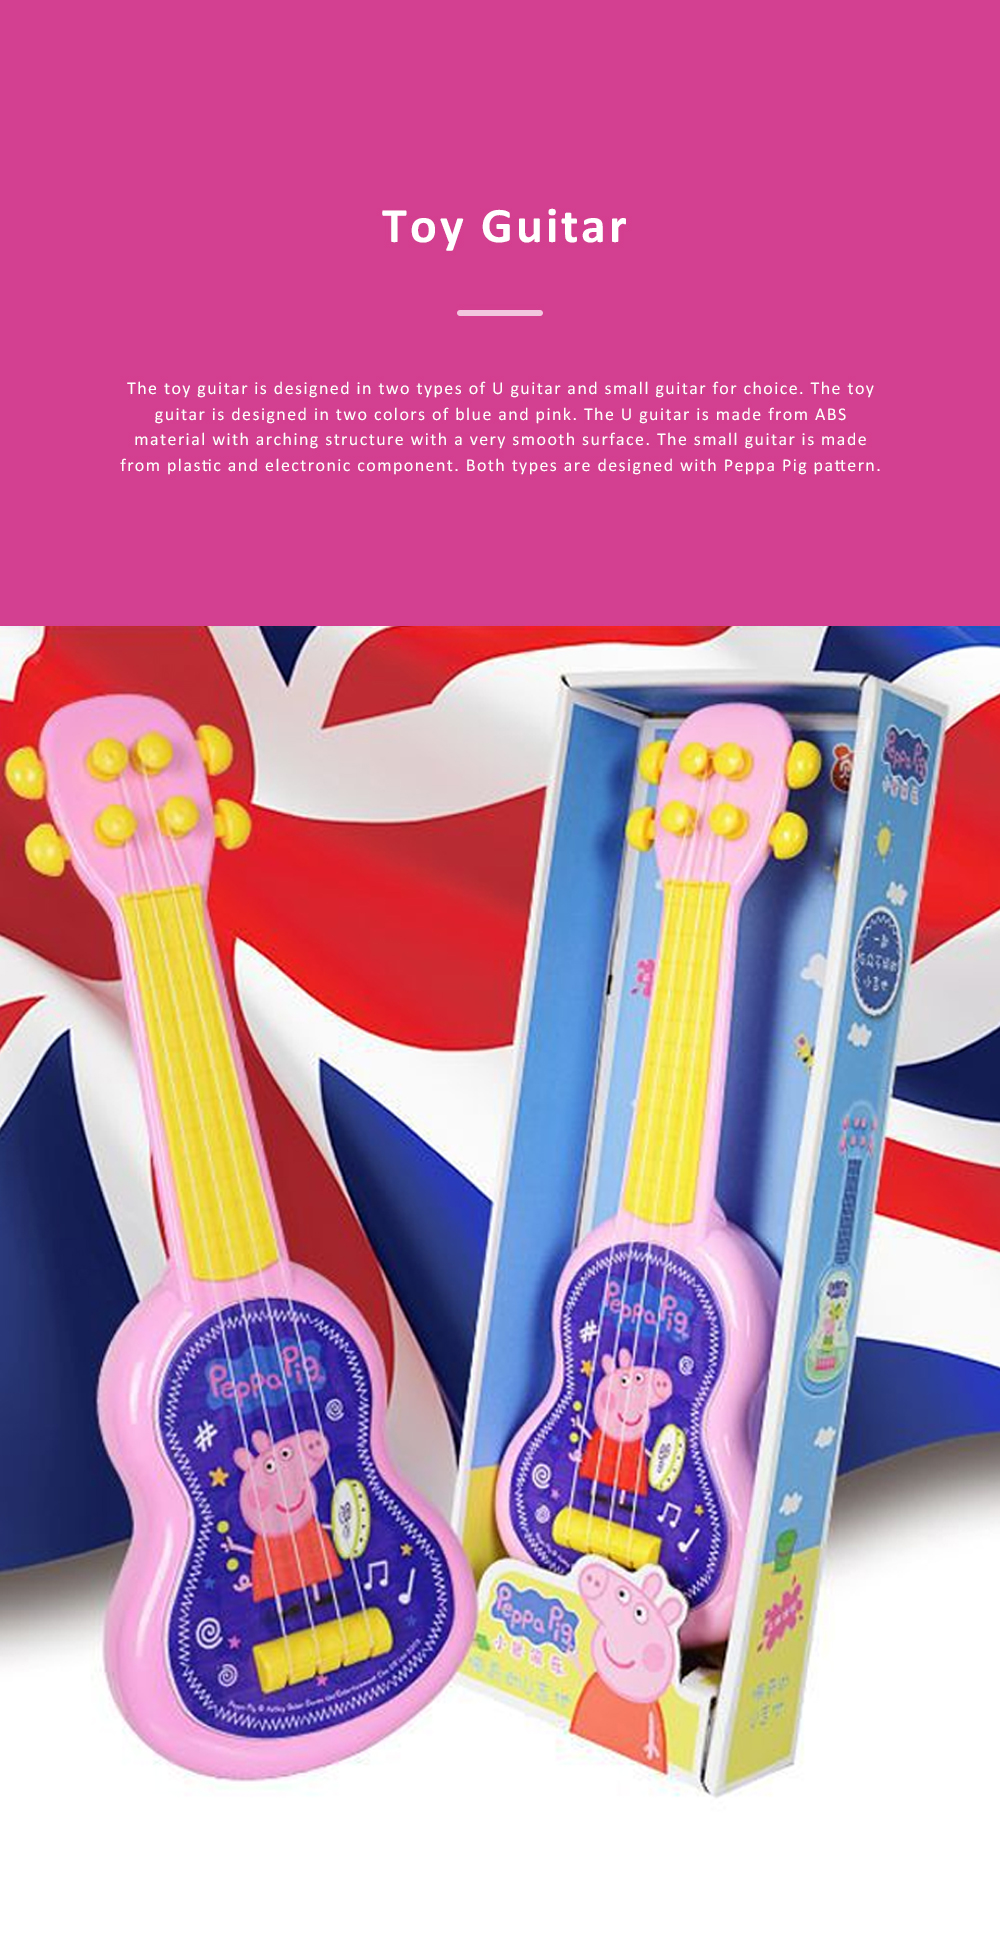 Simulated Mini Guitar Toy for Kids' Gift Choice Peppa Pig Pattern Guitar Toy Small Size Musical Instrument Plaything 0